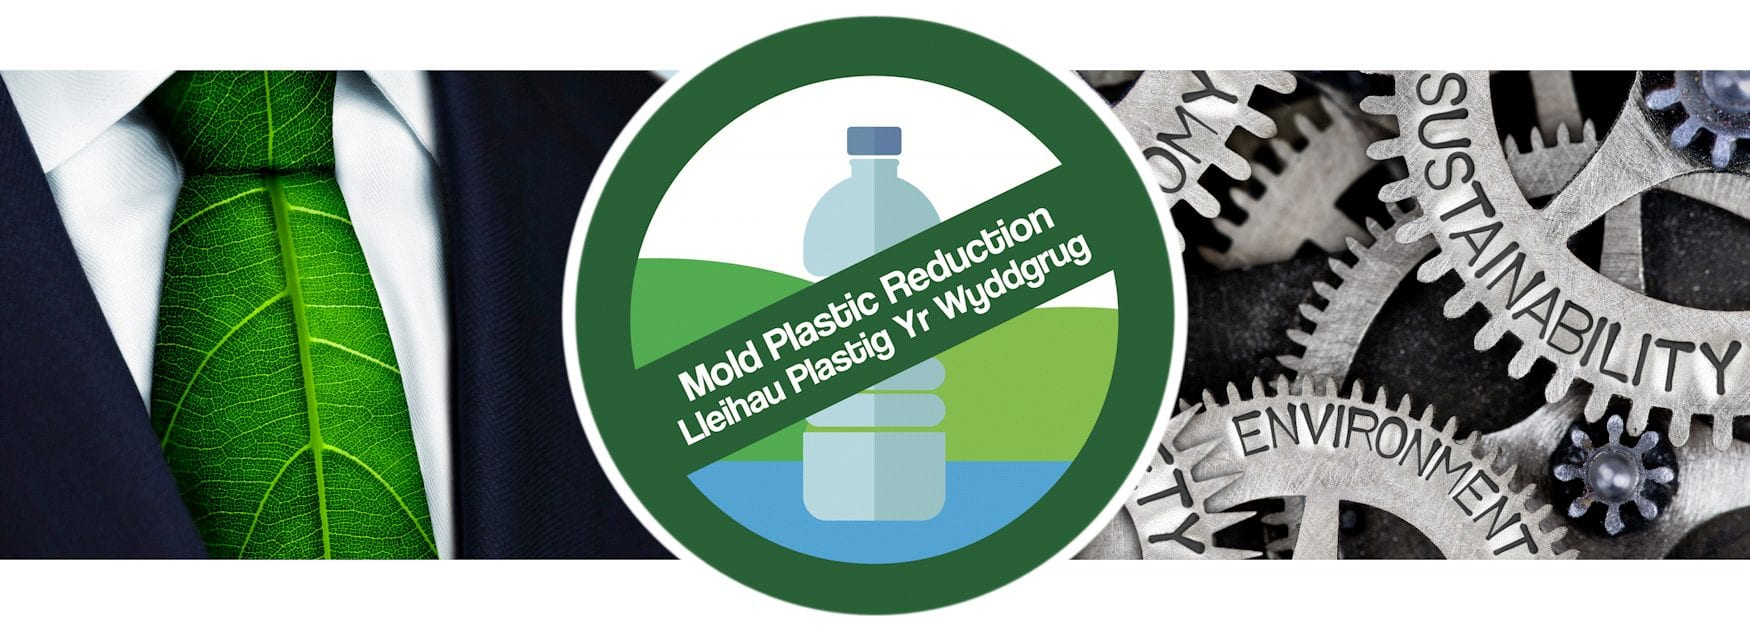 Header for Plastic Free Business Hacks page showing collage of shirt with leaf tie and cogs engraved with words including sustainability and environment